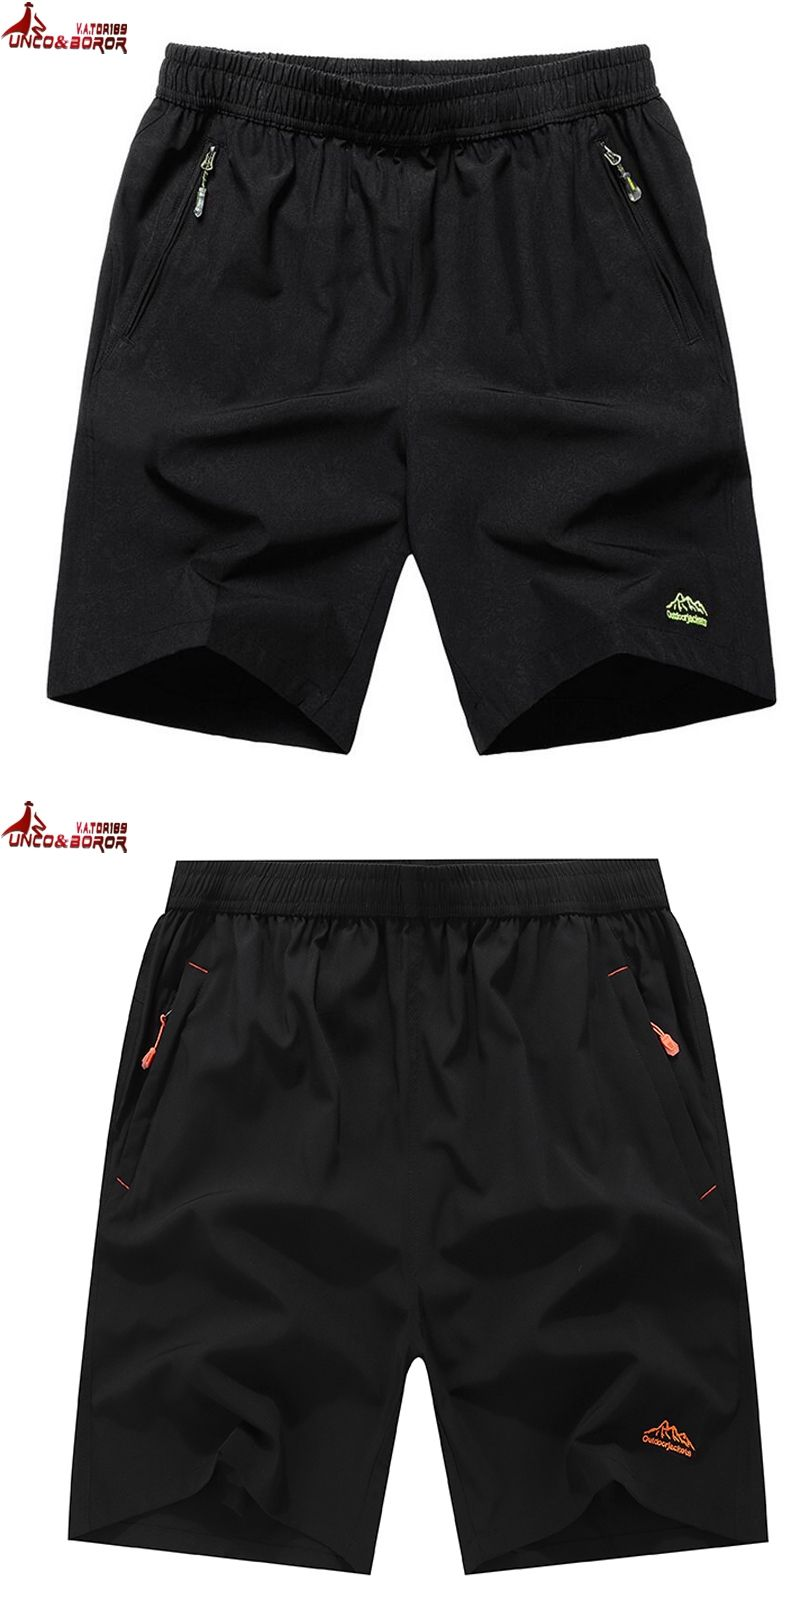 4c06c3b0a3e UNCO BOROR Summer Solid Leisure Men Shorts Casual Quick-drying Short  Trousers loose Elastic Waist short big size 9XL